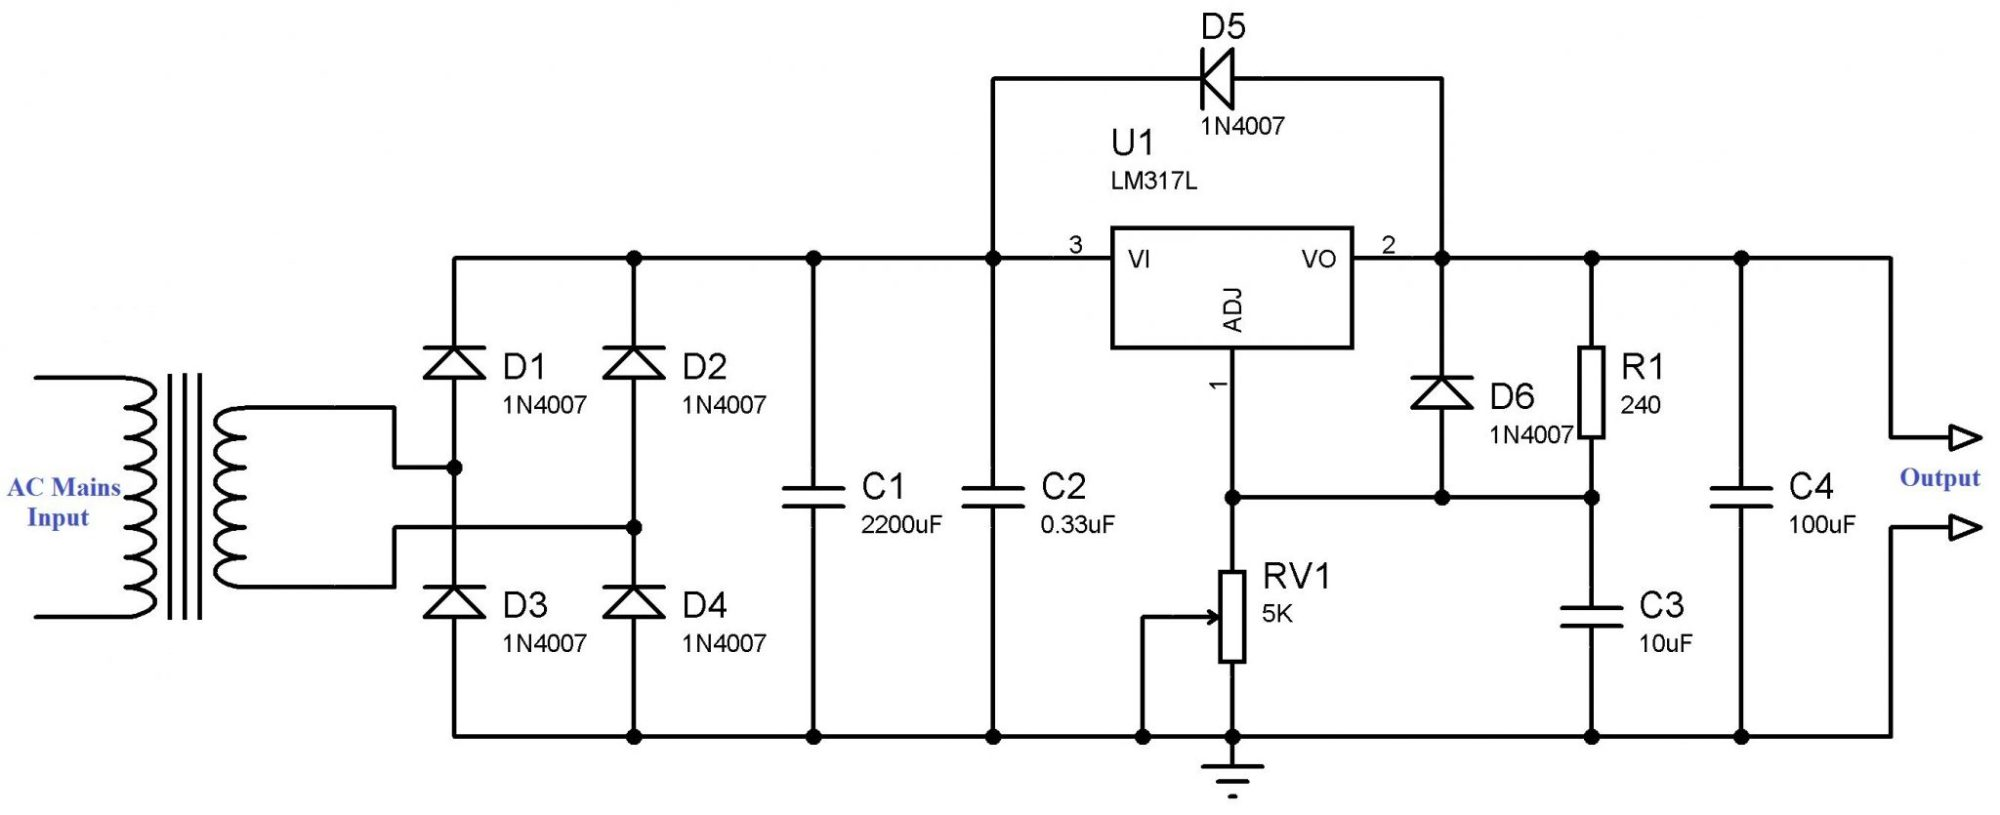 hight resolution of lm317 voltage regulator calculator electronic circuits schematics regulator circuit on images of electronic circuit schematic diagrams